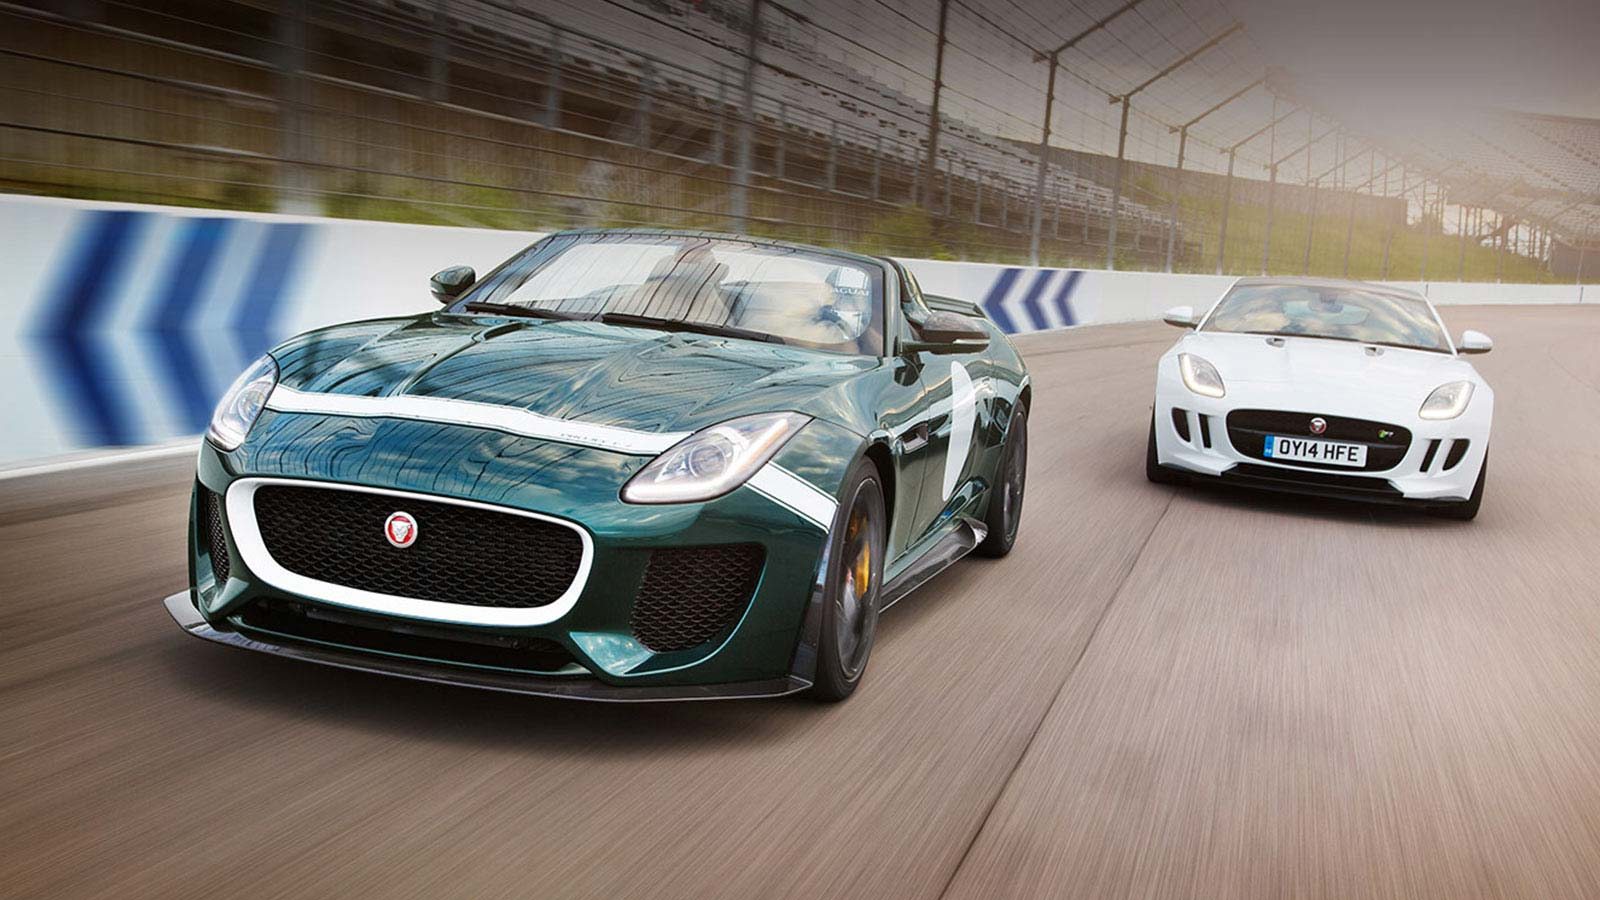 Jaguar F-TYPE Project 7 and F-TYPE in white racing together.